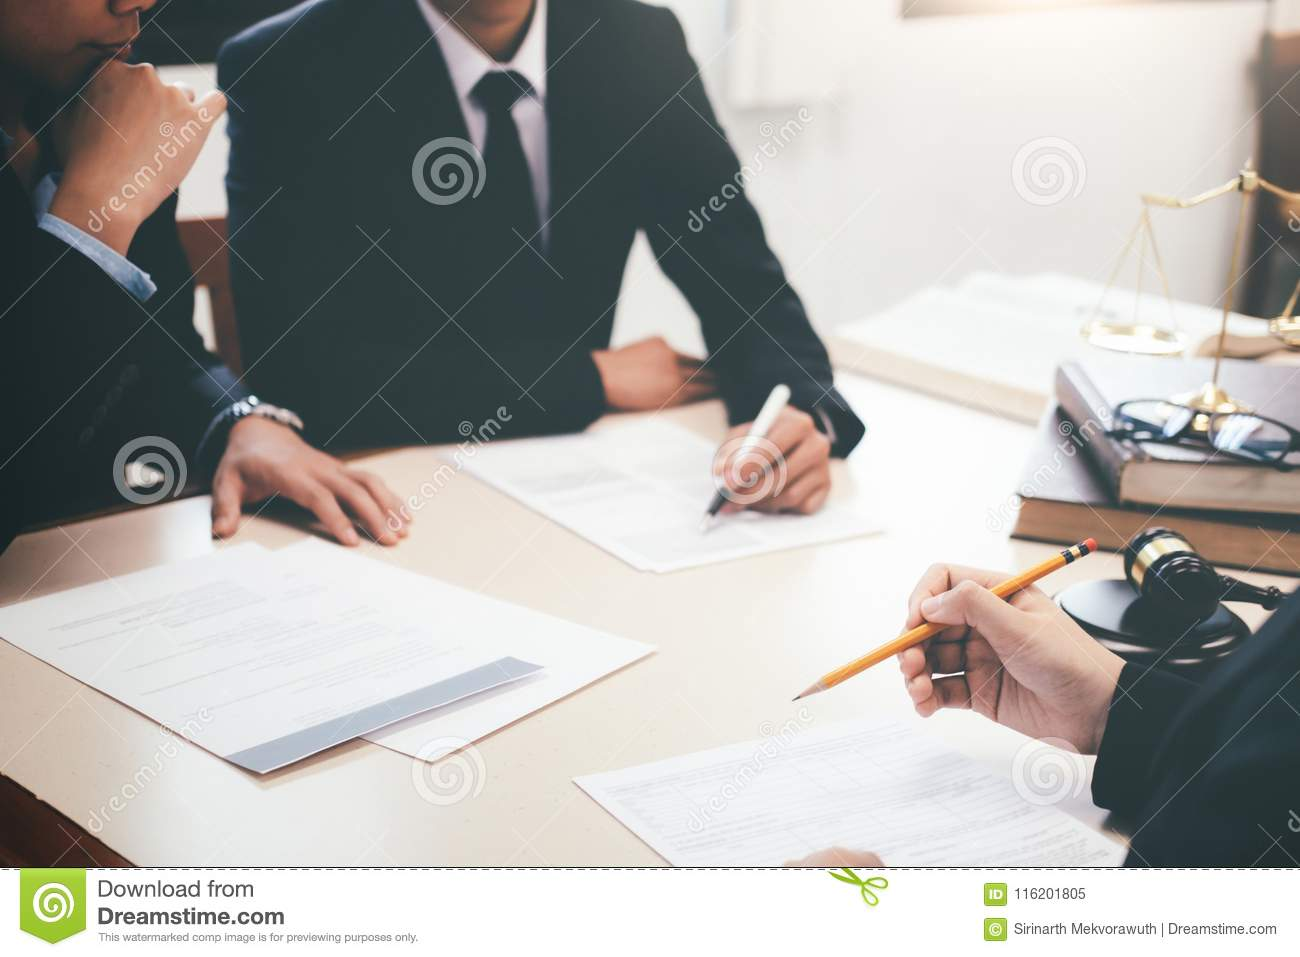 Lawyer and attorney having team meeting at law firm.